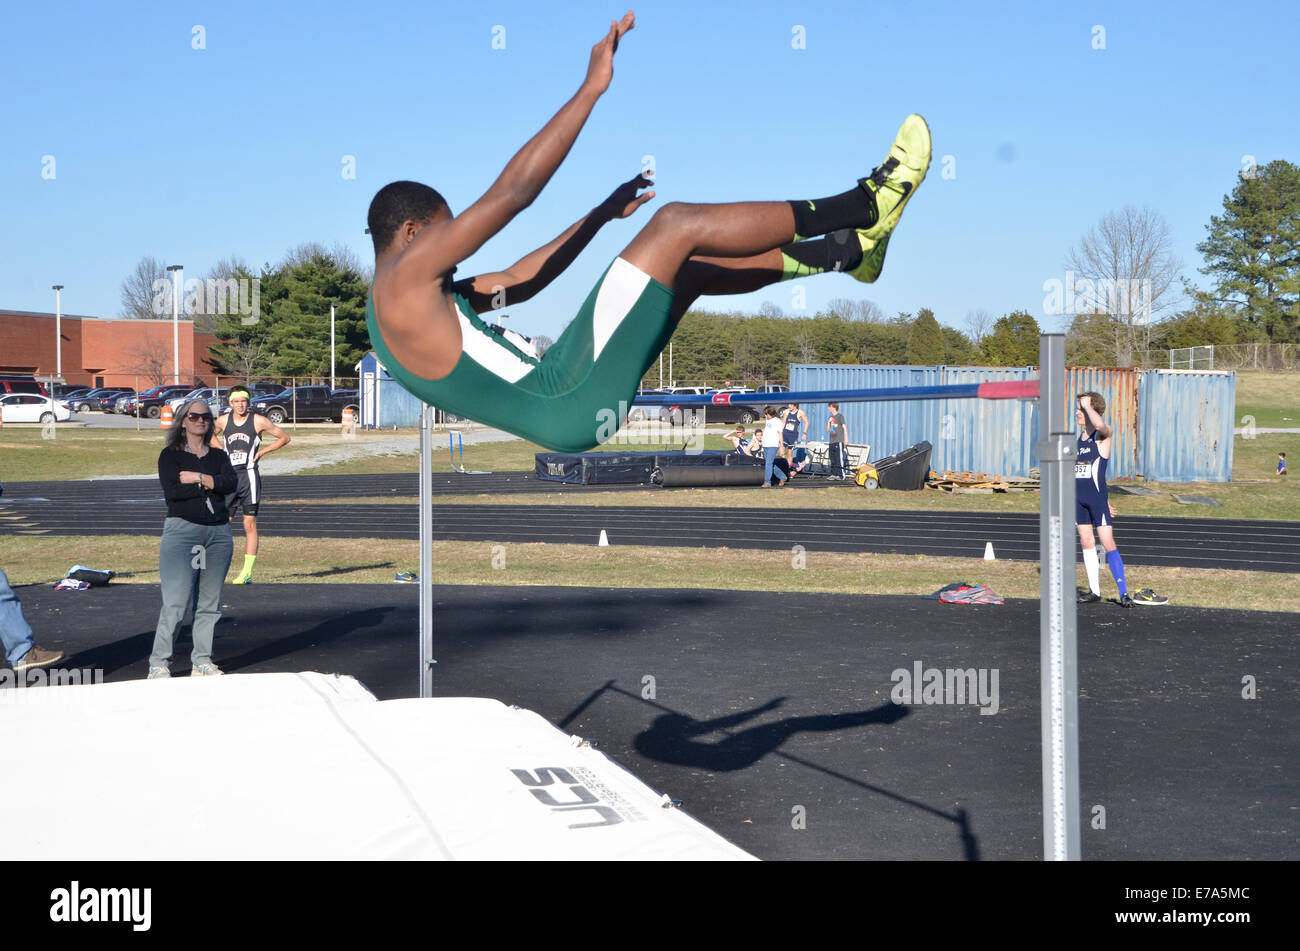 A high jump during a high school track and field event in Md - Stock Image